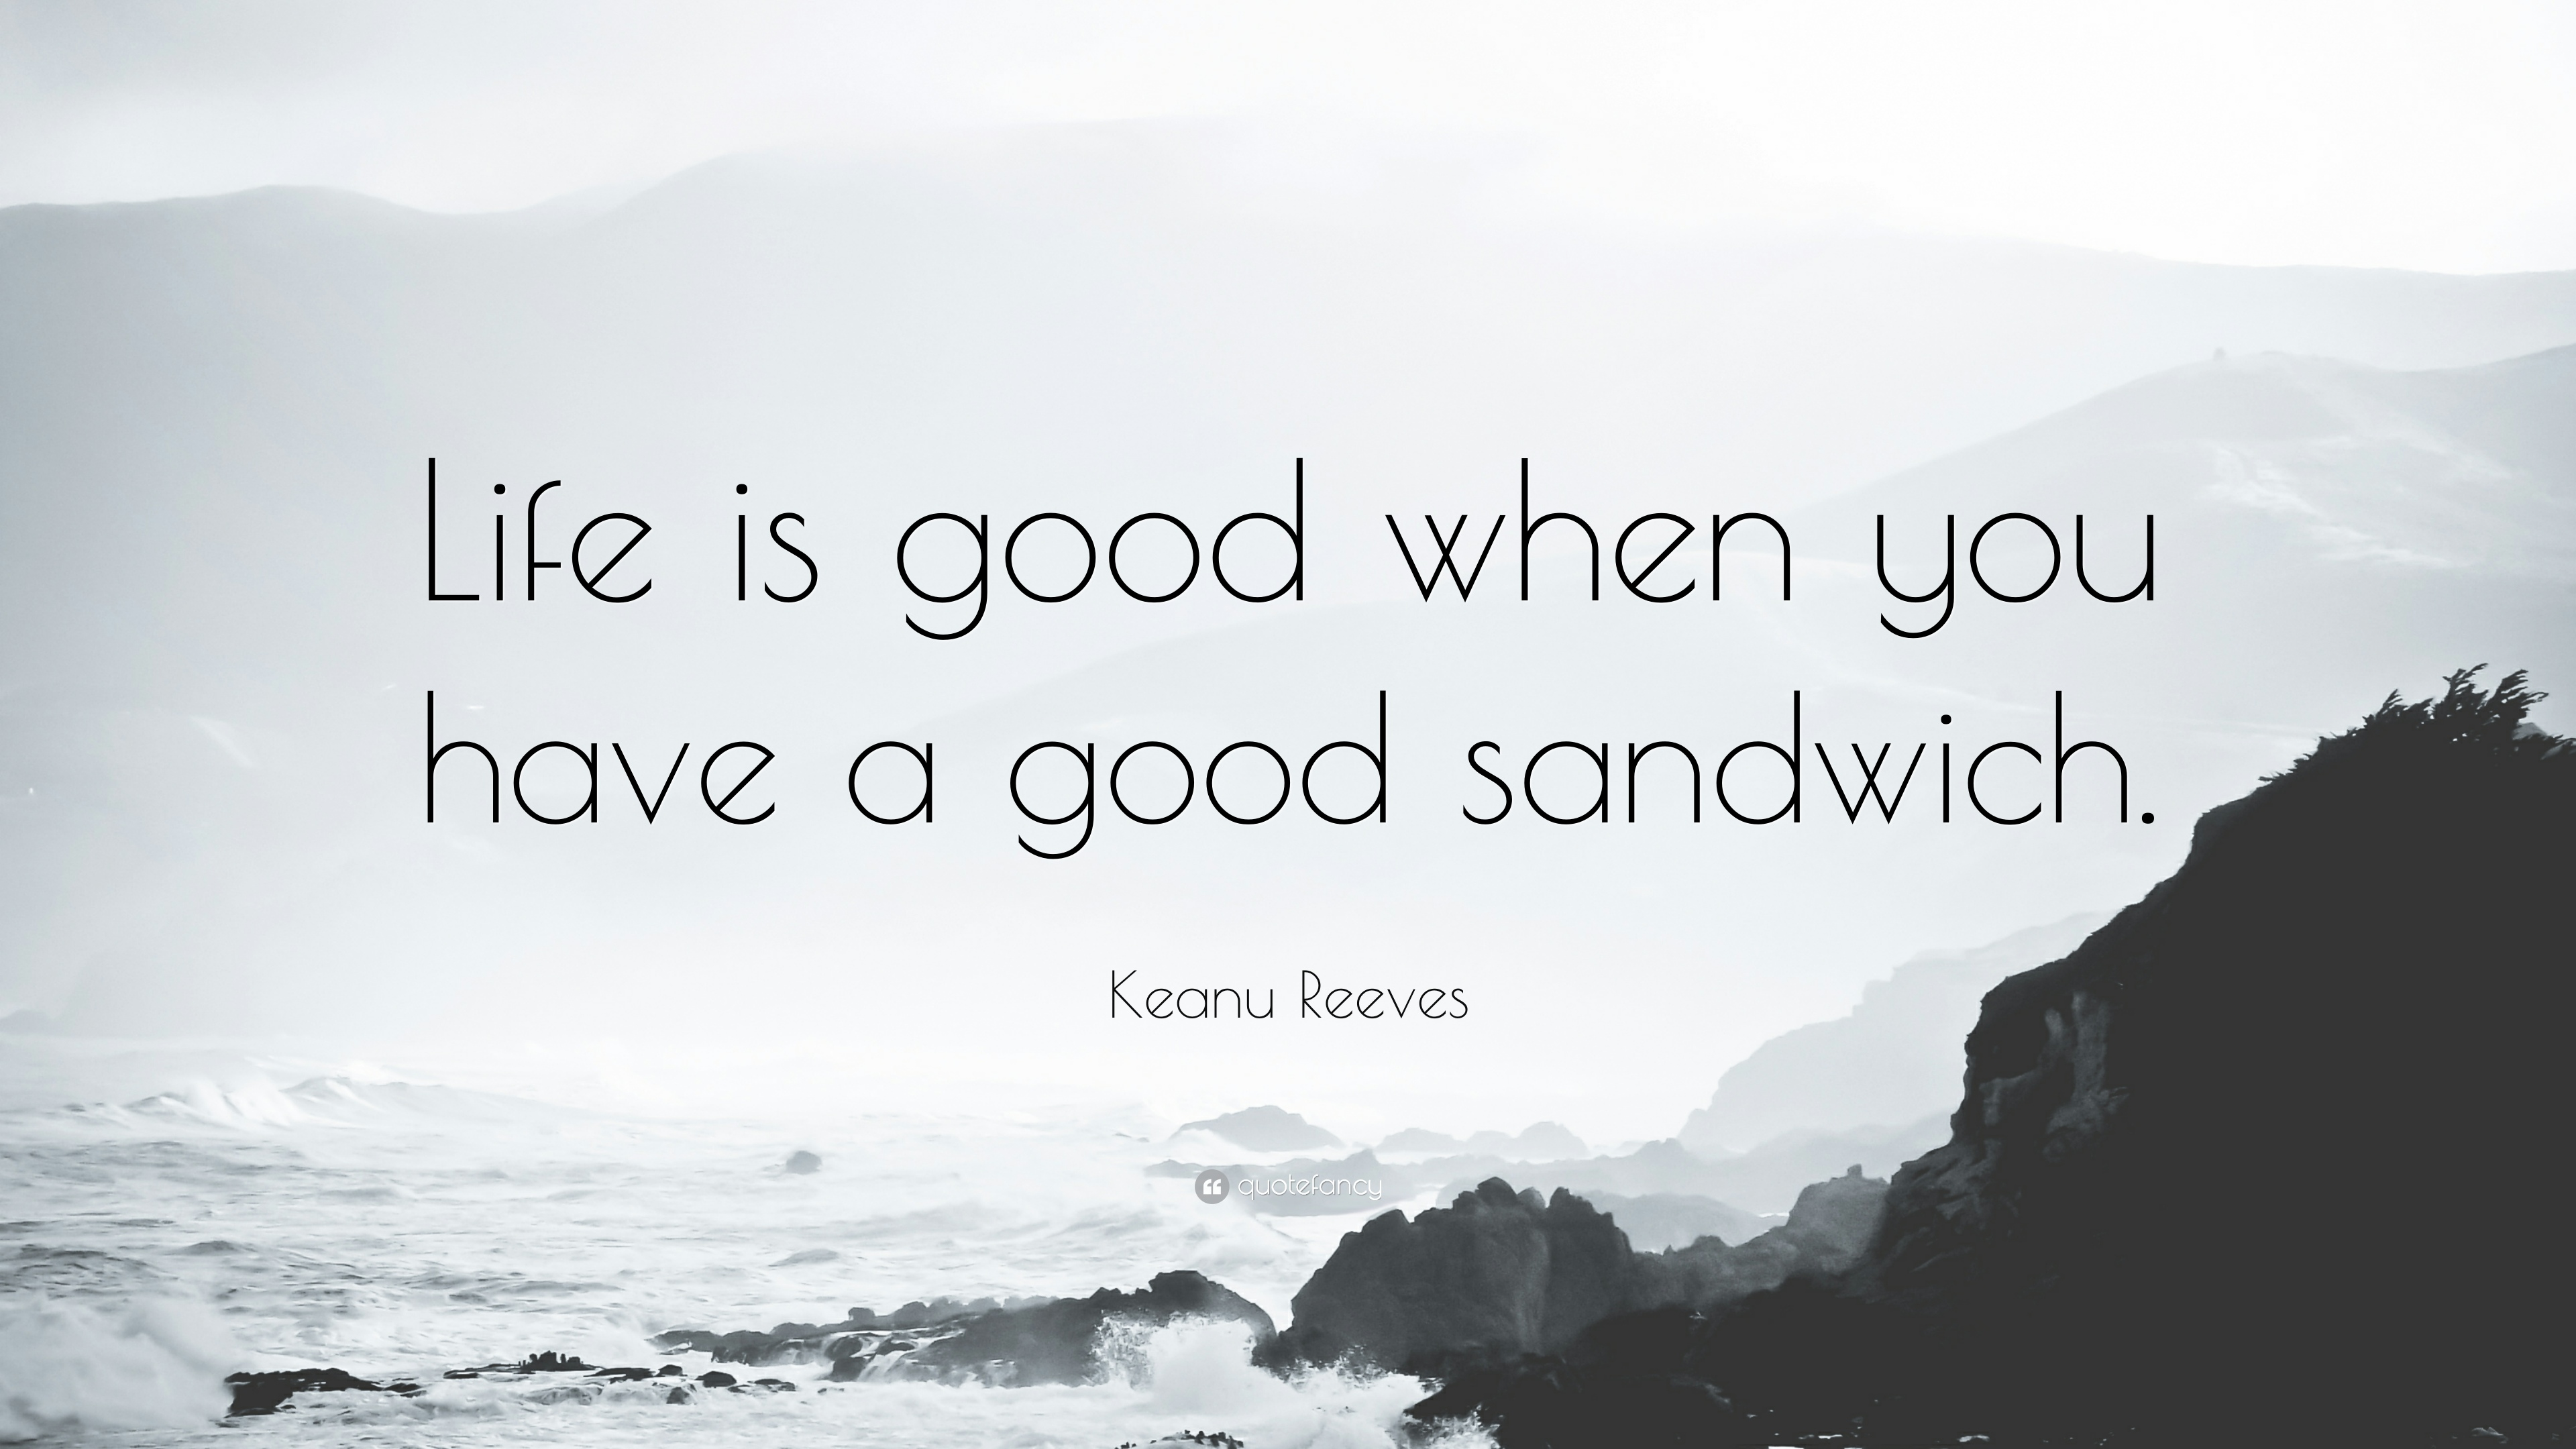 Keanu Reeves Quote Life Is Good When You Have A Good Sandwich 7